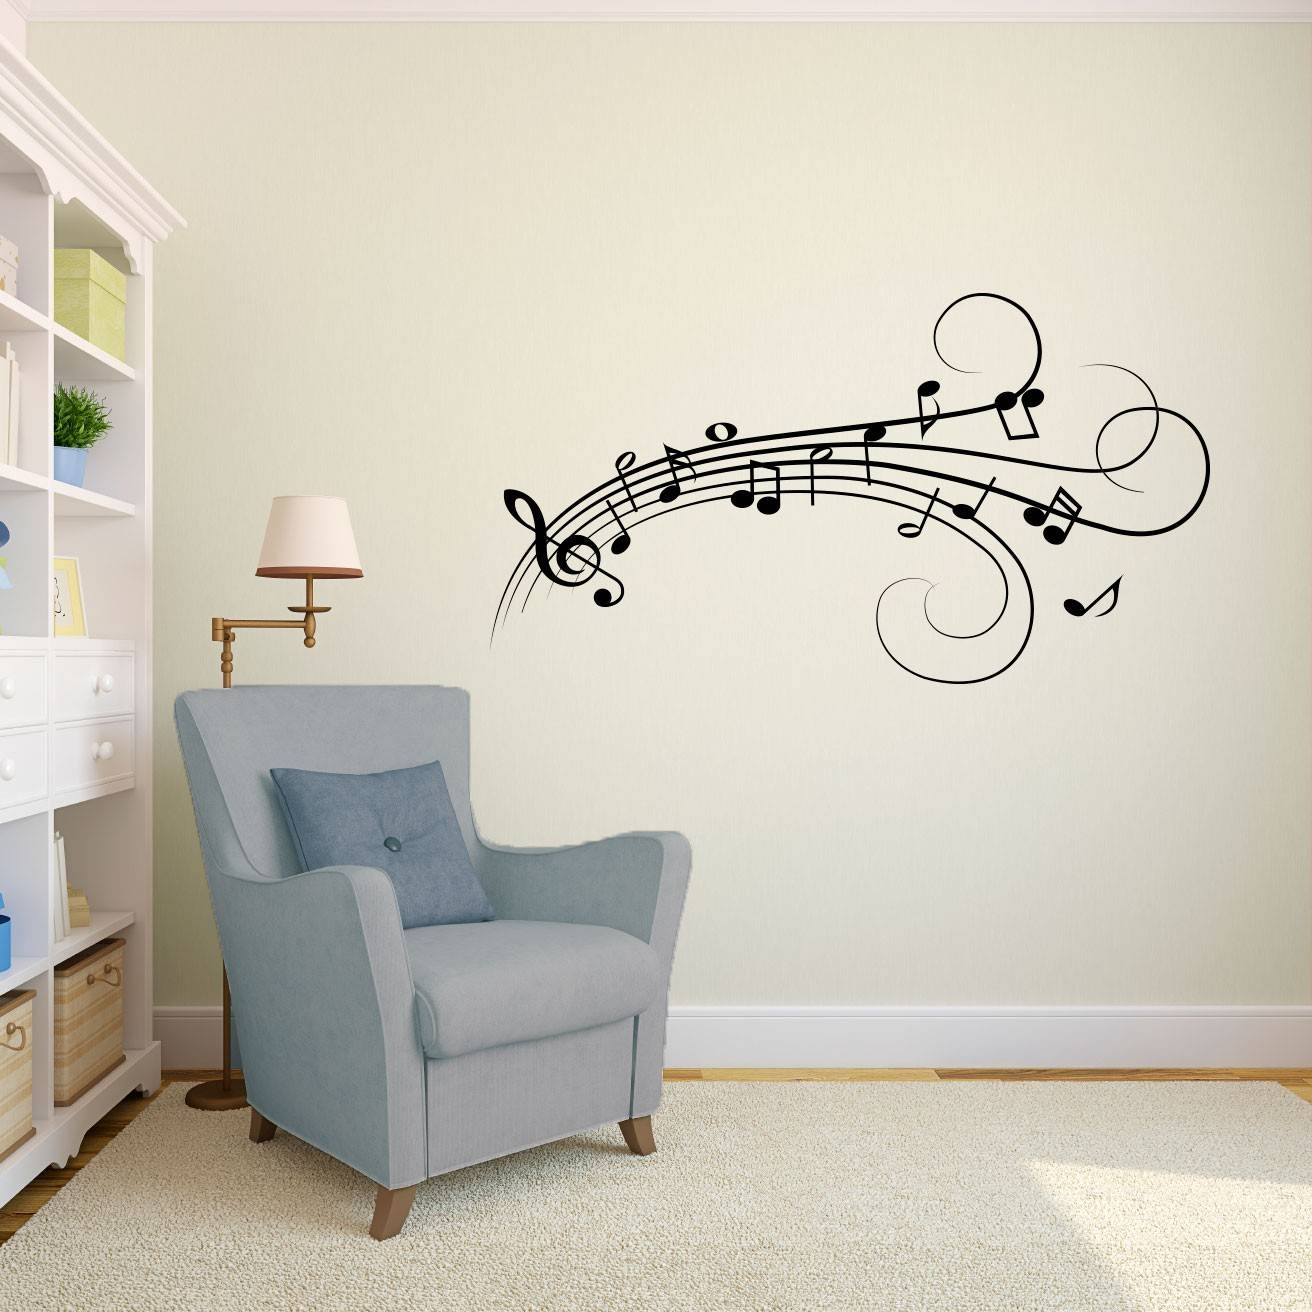 Music Note Wall Art Fabulous As Metal Wall Art For Metal Wall Art Throughout Most Recently Released Metal Music Notes Wall Art (View 9 of 20)